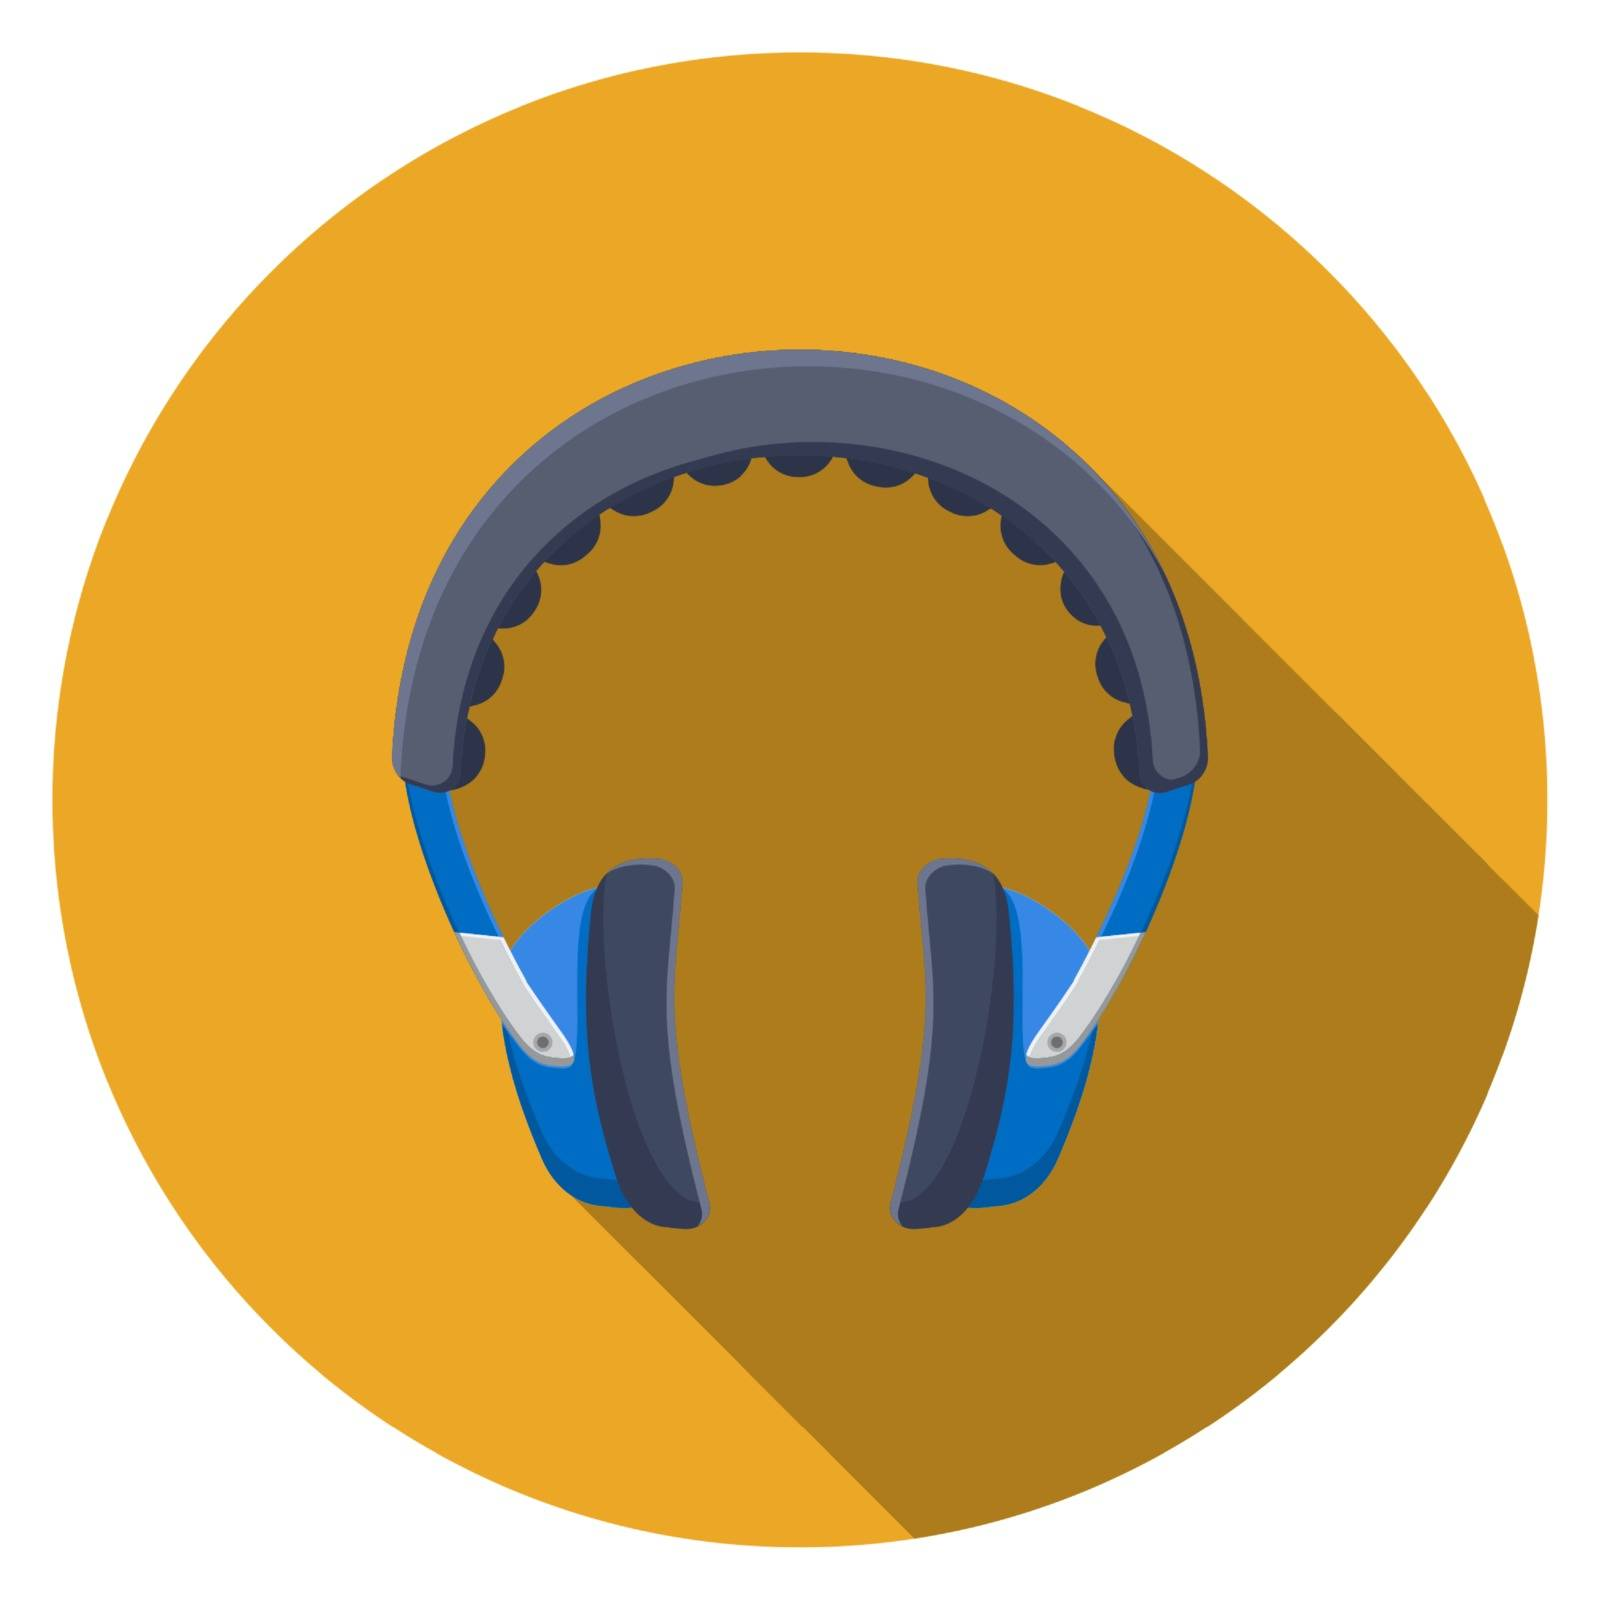 Flat design vector headphones icon with long shadow, isolated.